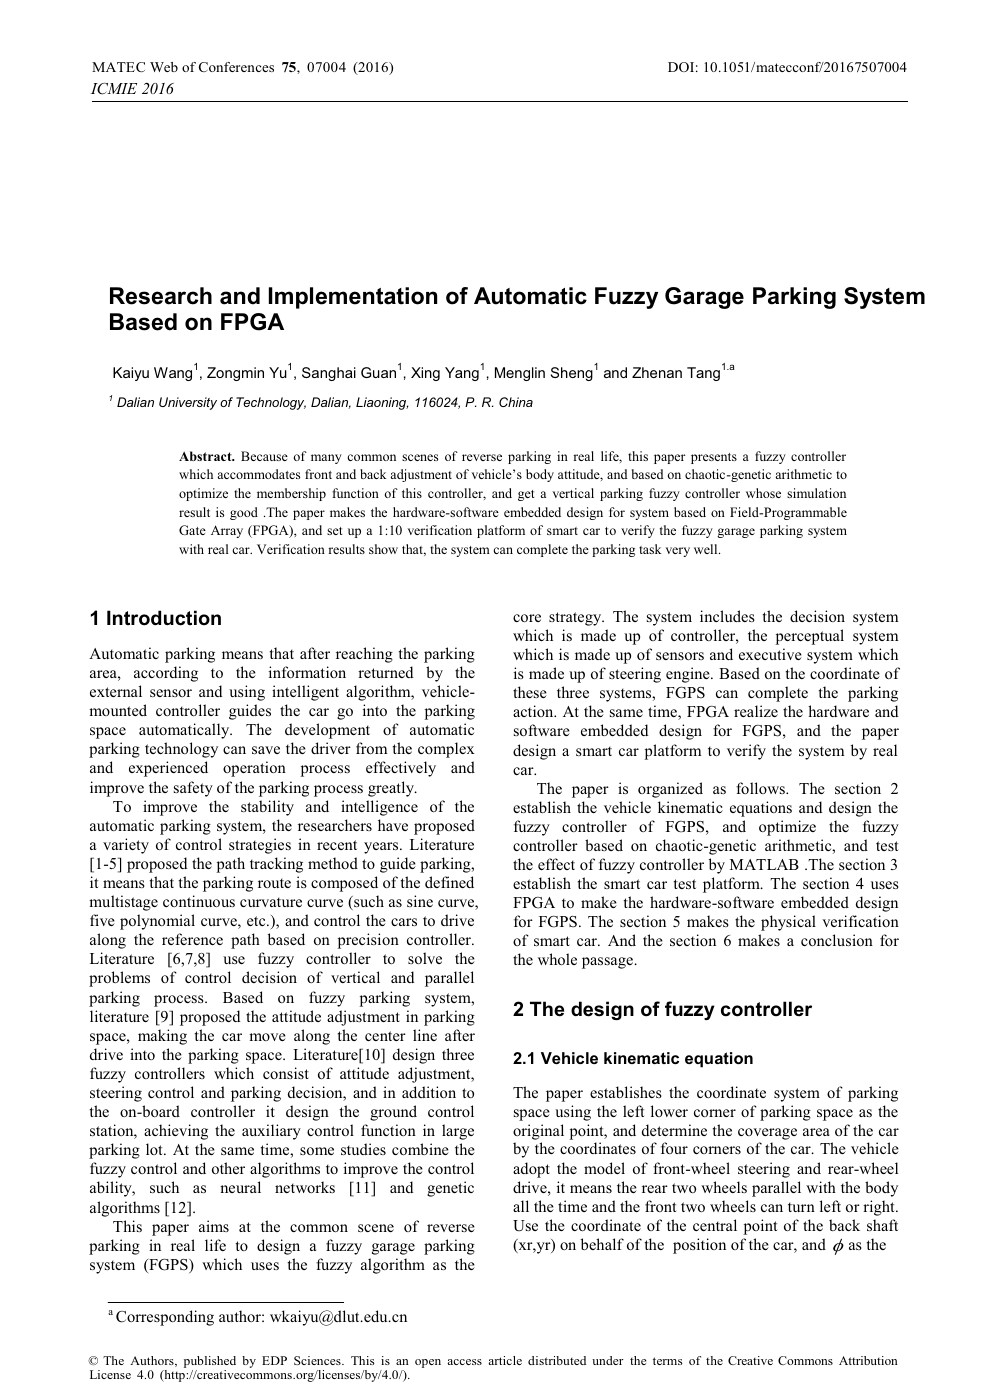 Research and Implementation of Automatic Fuzzy Garage